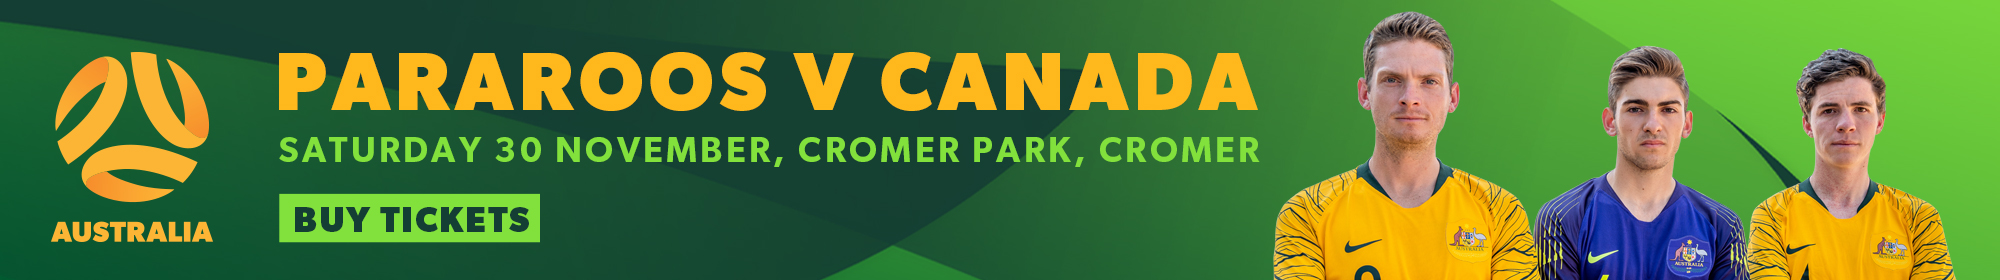 Pararoos-Canada-Buy-Tickets